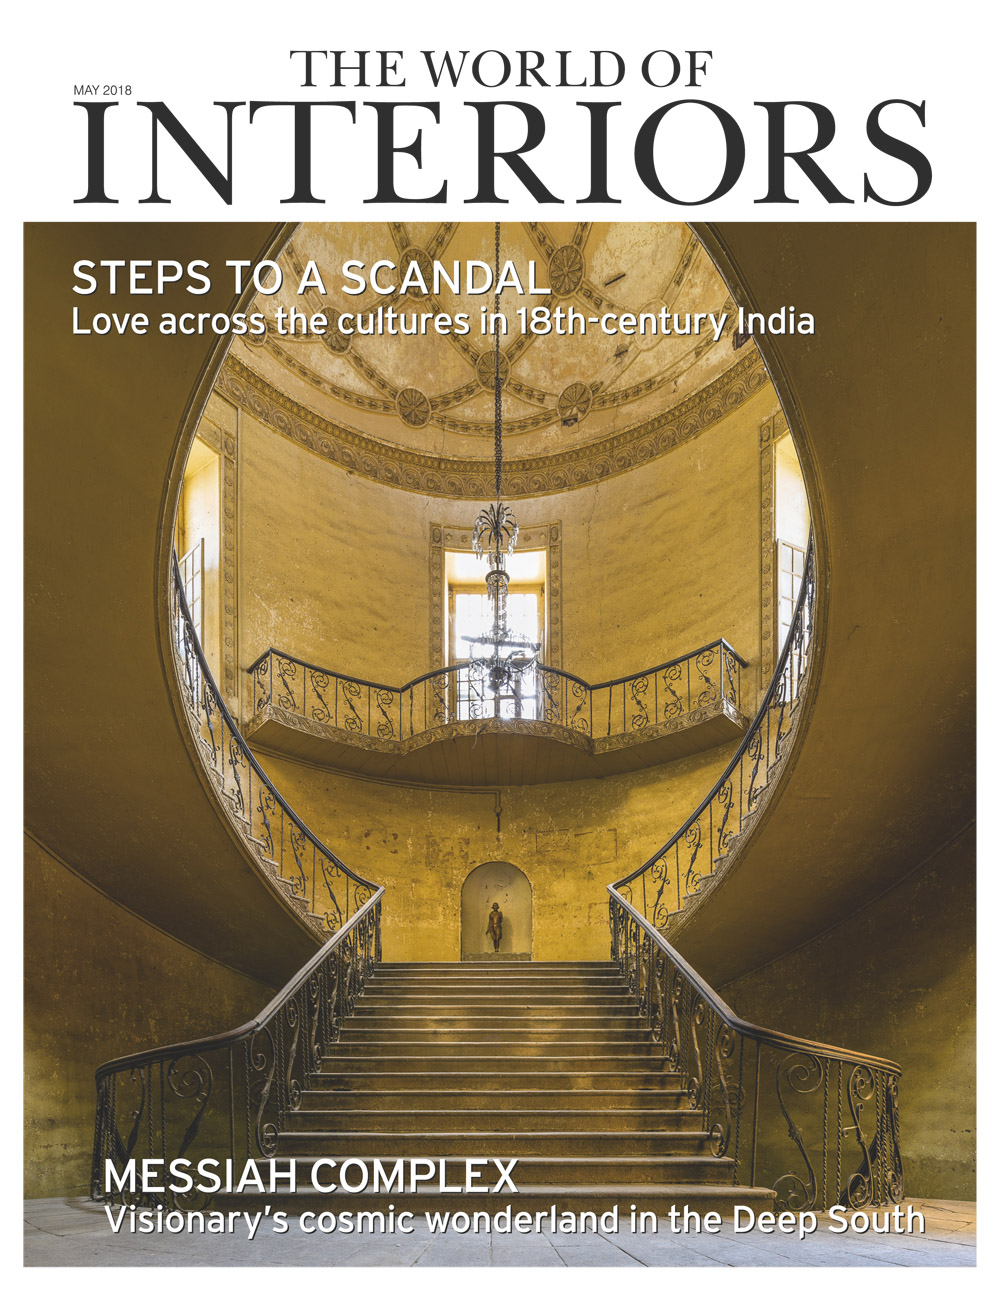 world_of_interiors_cover.jpg